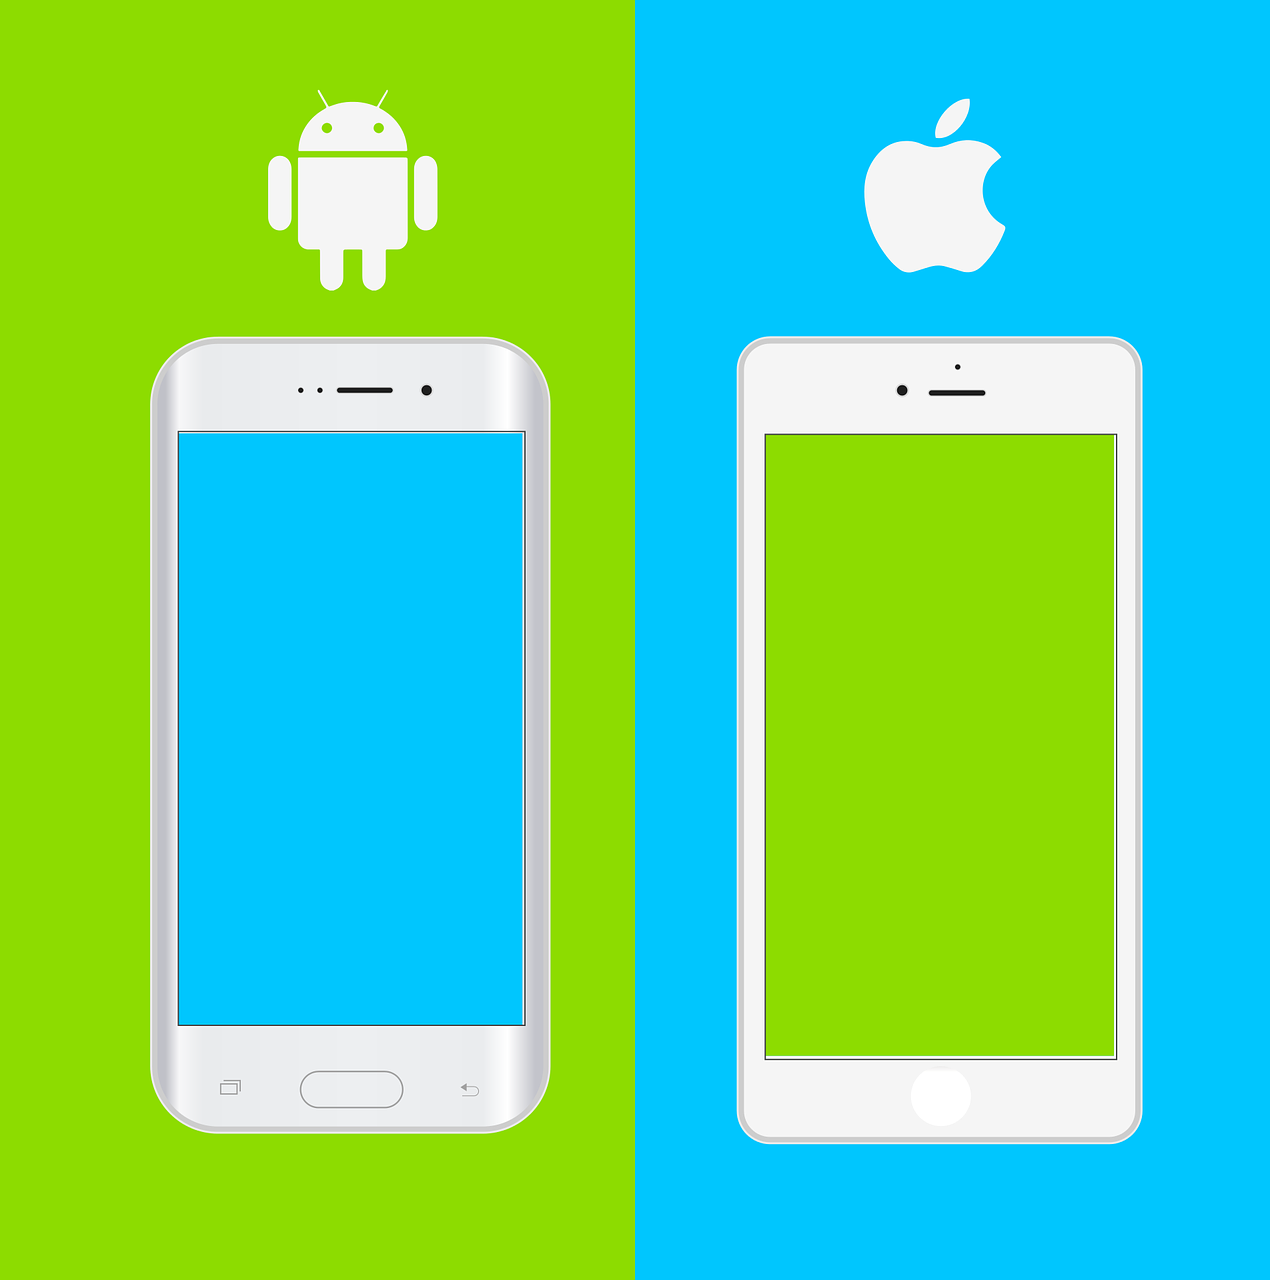 15-20% Android Users Switch to iOS in Last Six Months - Survey Shows The User Preferences